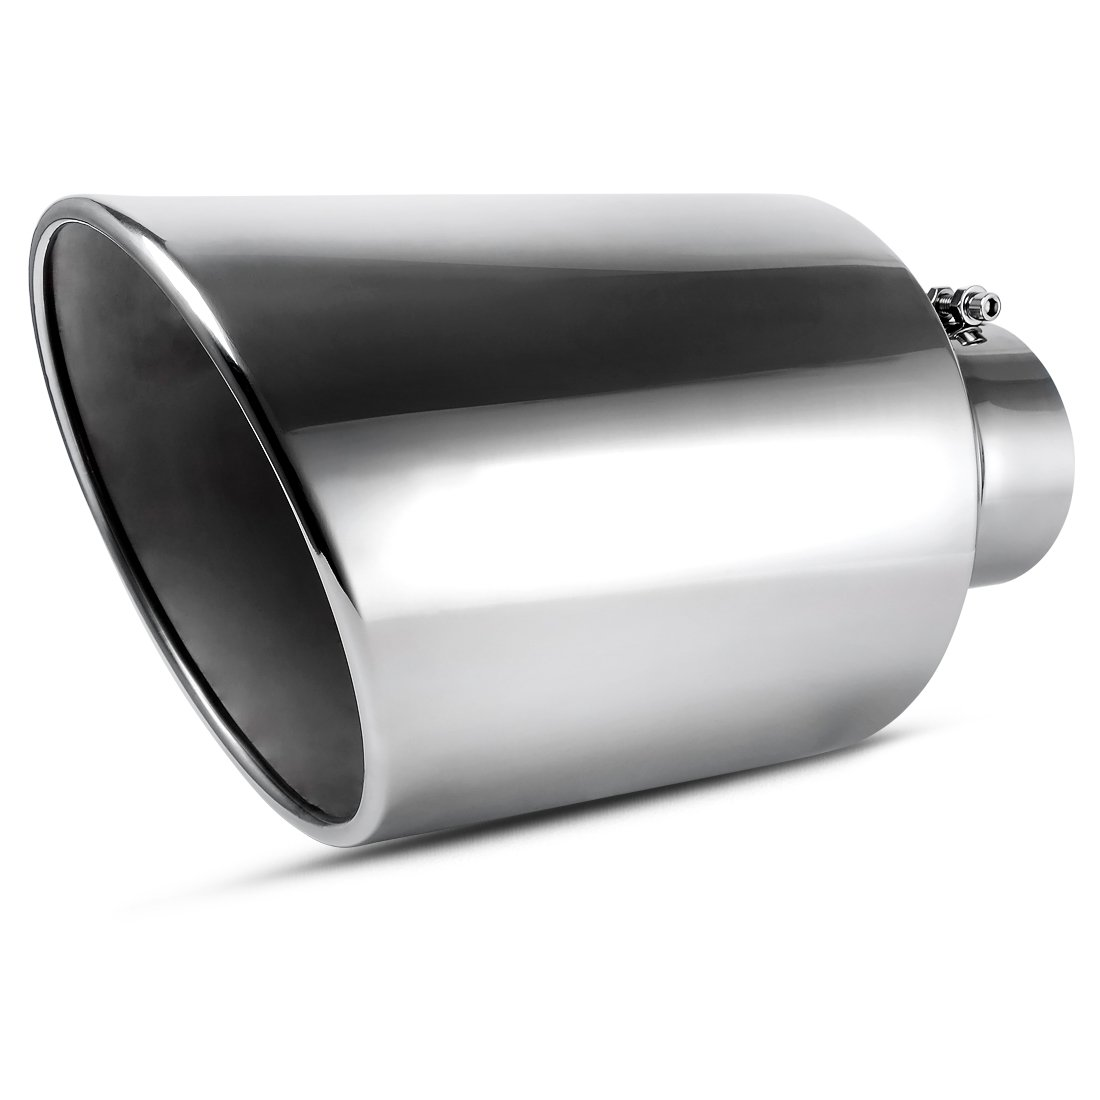 5 Inlet Black Exhaust Tip AUTOSAVER88 5 x 6 x 15 Clamp On Design Universal Stainless Steel Diesel Exhaust Tailpipe Tip for Truck.